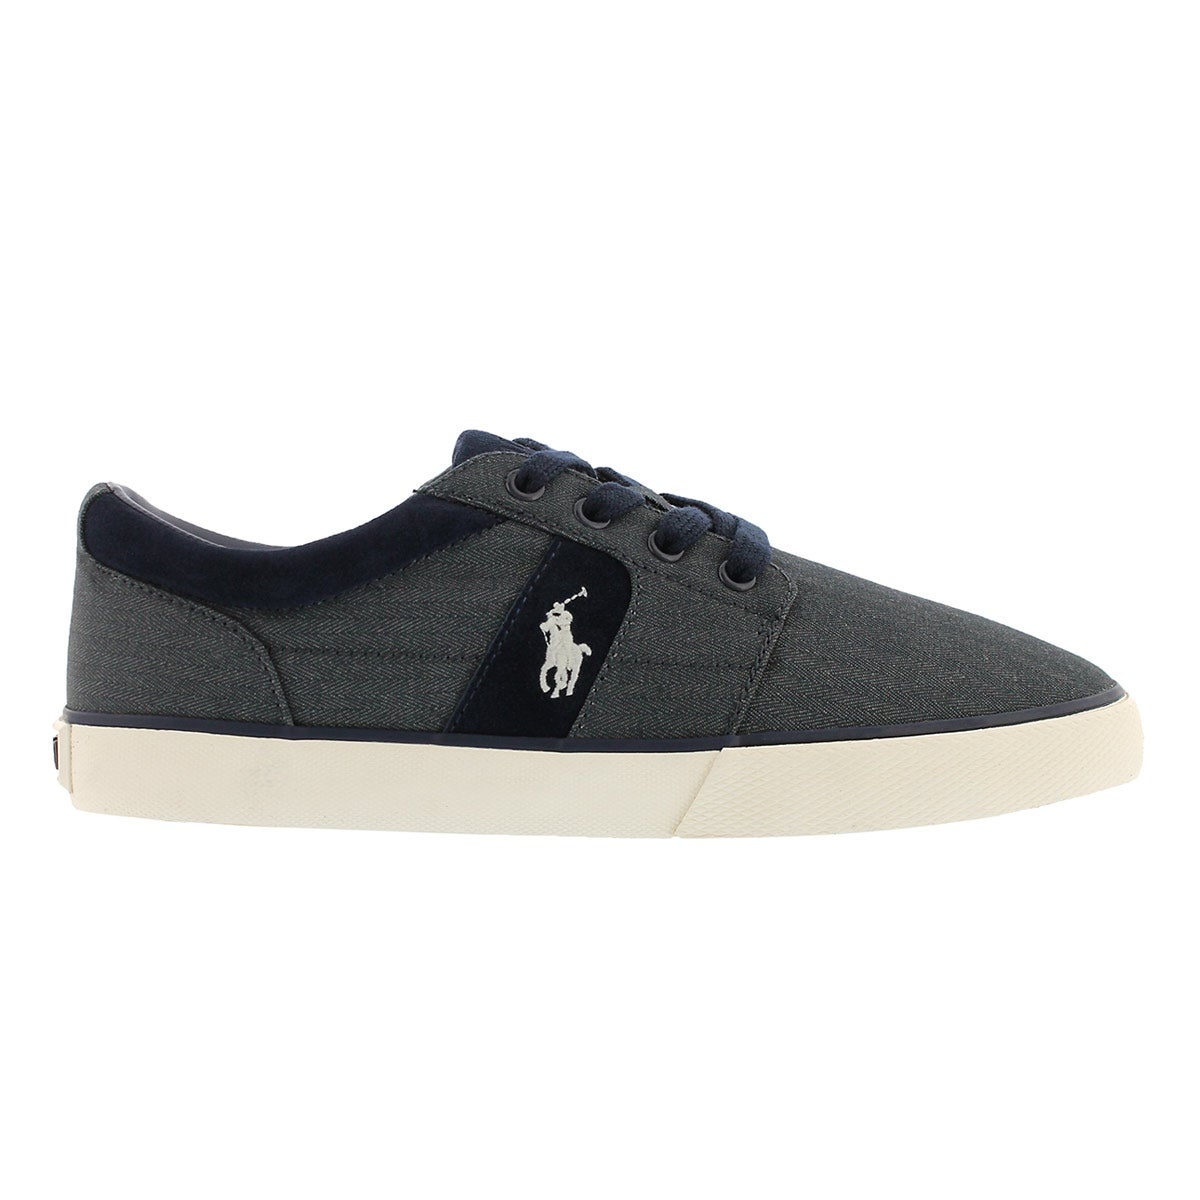 Mns Halmore II denim lace up sneaker